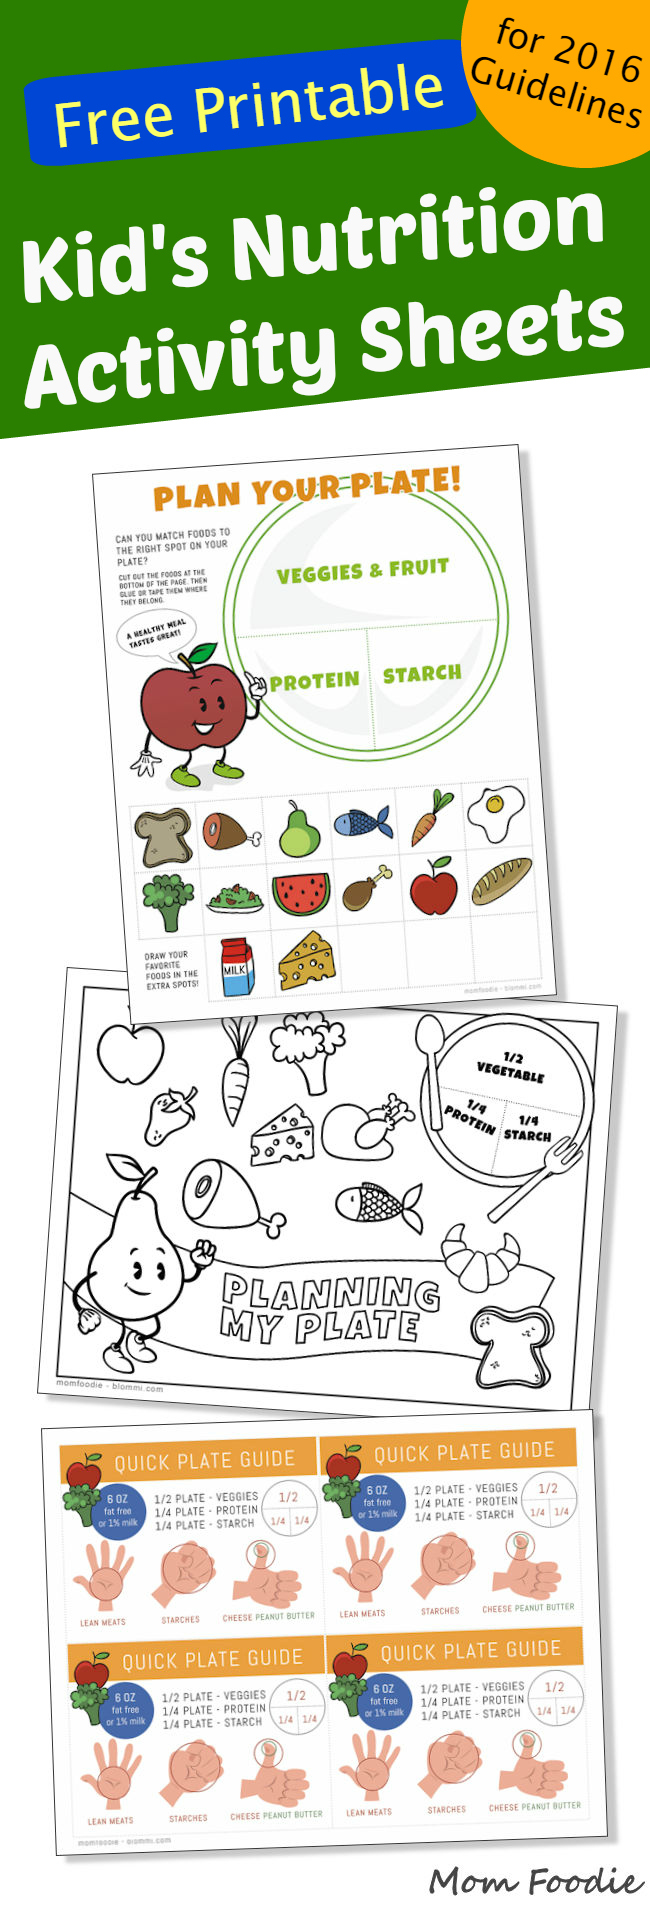 Kids Nutrition Activity Sheets 2016